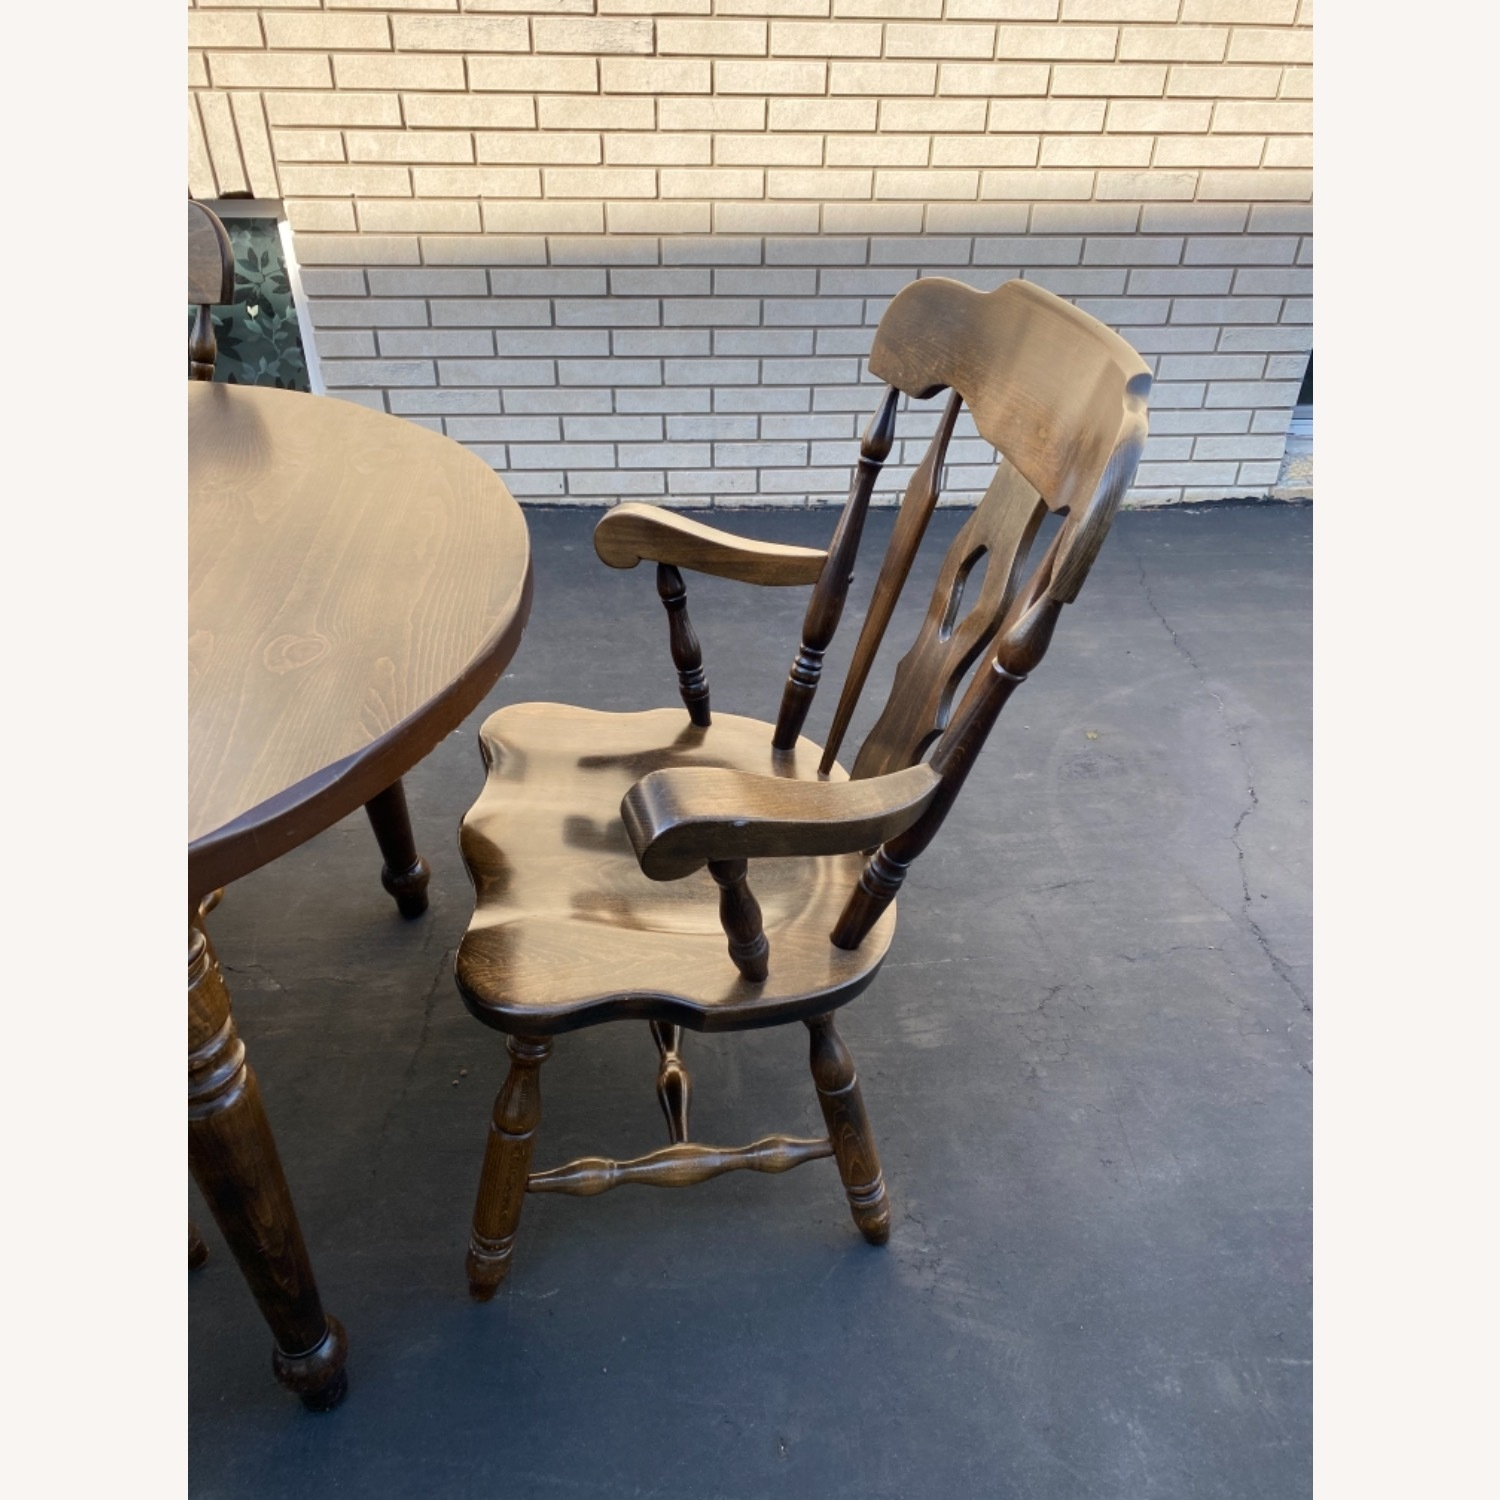 Solid Wood Dining Table with 4 Chairs - image-5